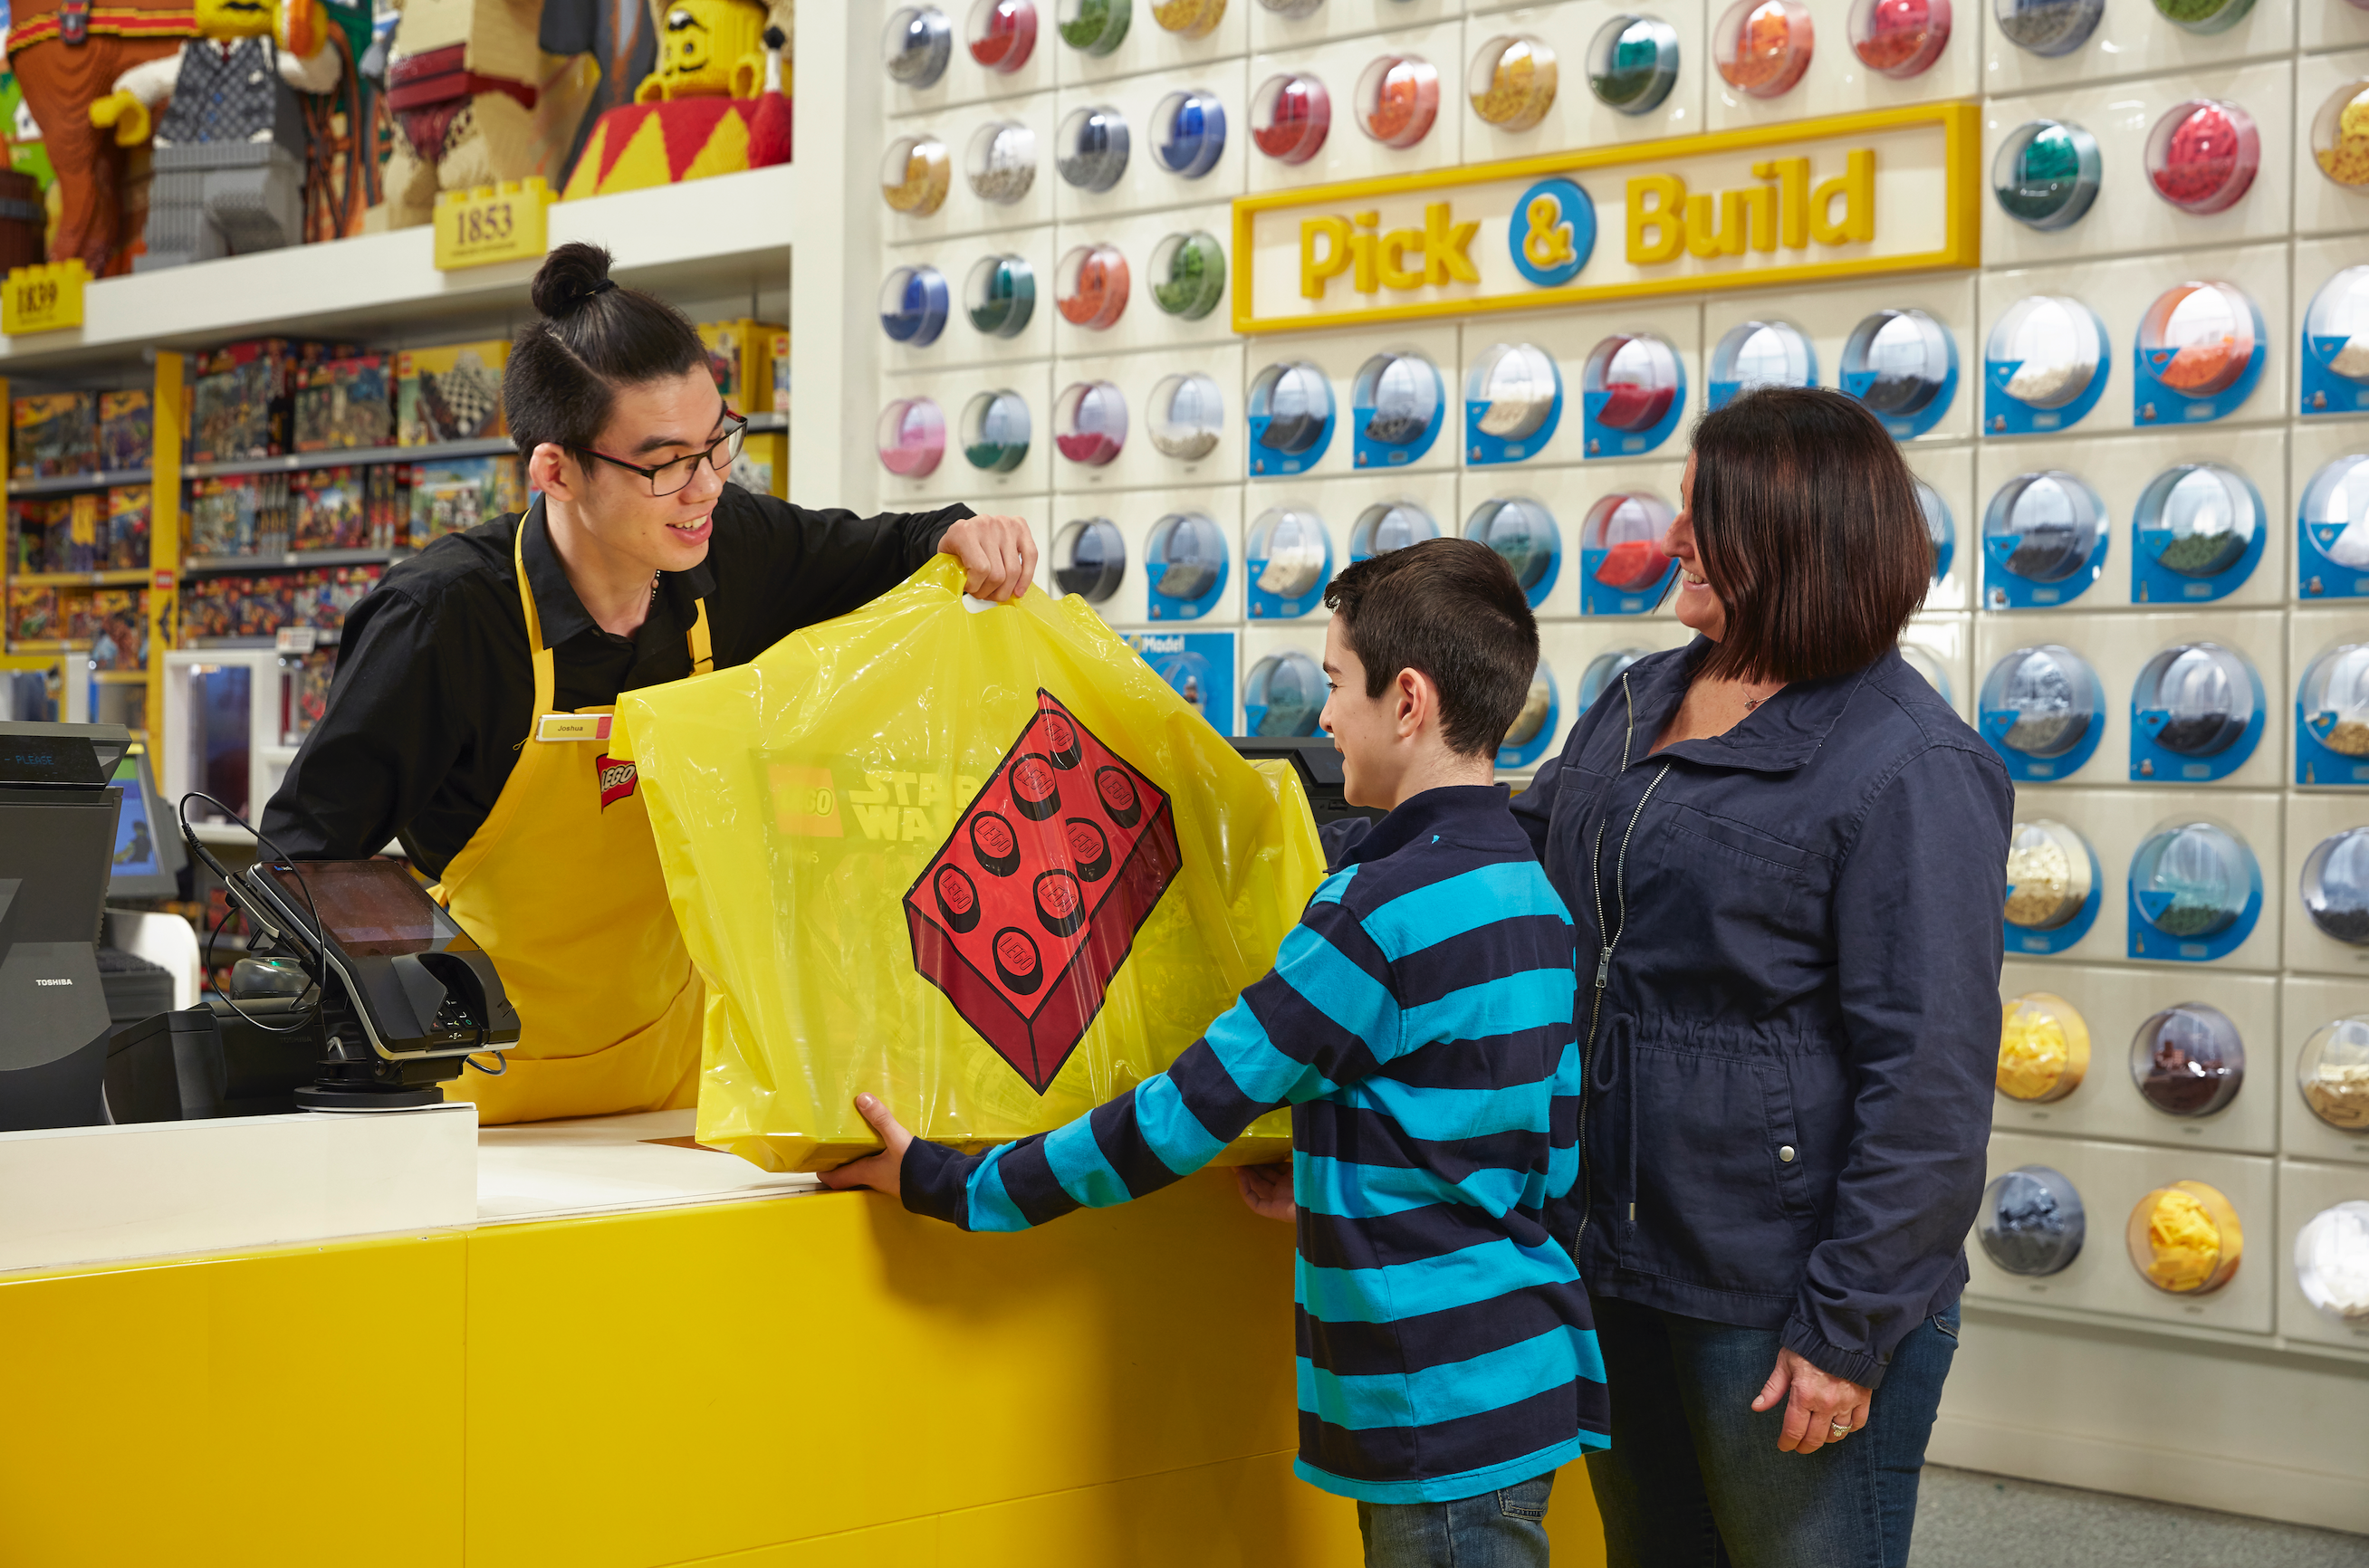 LEGO® Store To Open at Destiny USA - Destiny USA on destiny usa floor plan, destiny usa hotel, destiny usa stores, destiny usa interior, destiny usa expansion, us demographic map, destiny usa entertainment, destiny usa restaurants, destiny usa bowling, destiny usa movies, destiny usa syracuse,